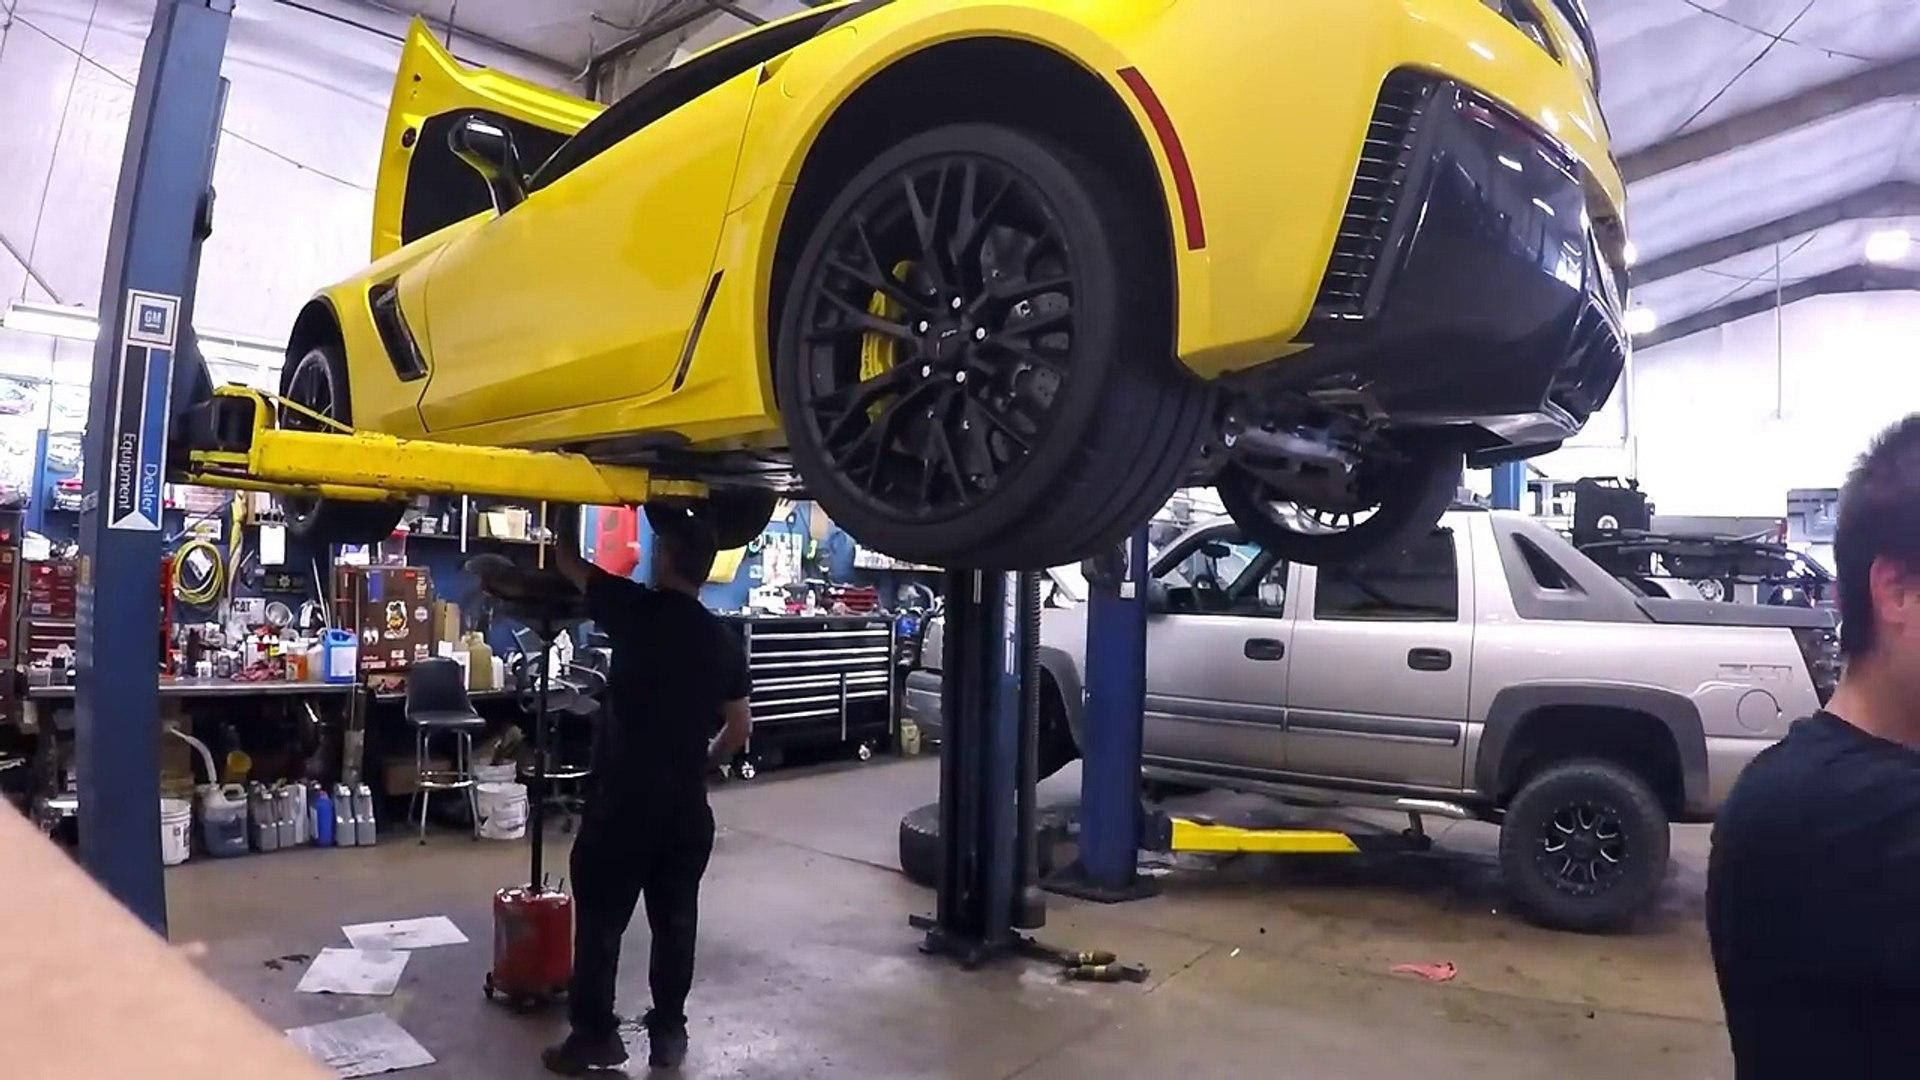 RETURNING My New Z06 to the Dealership After 9 Days... Here's The Story.